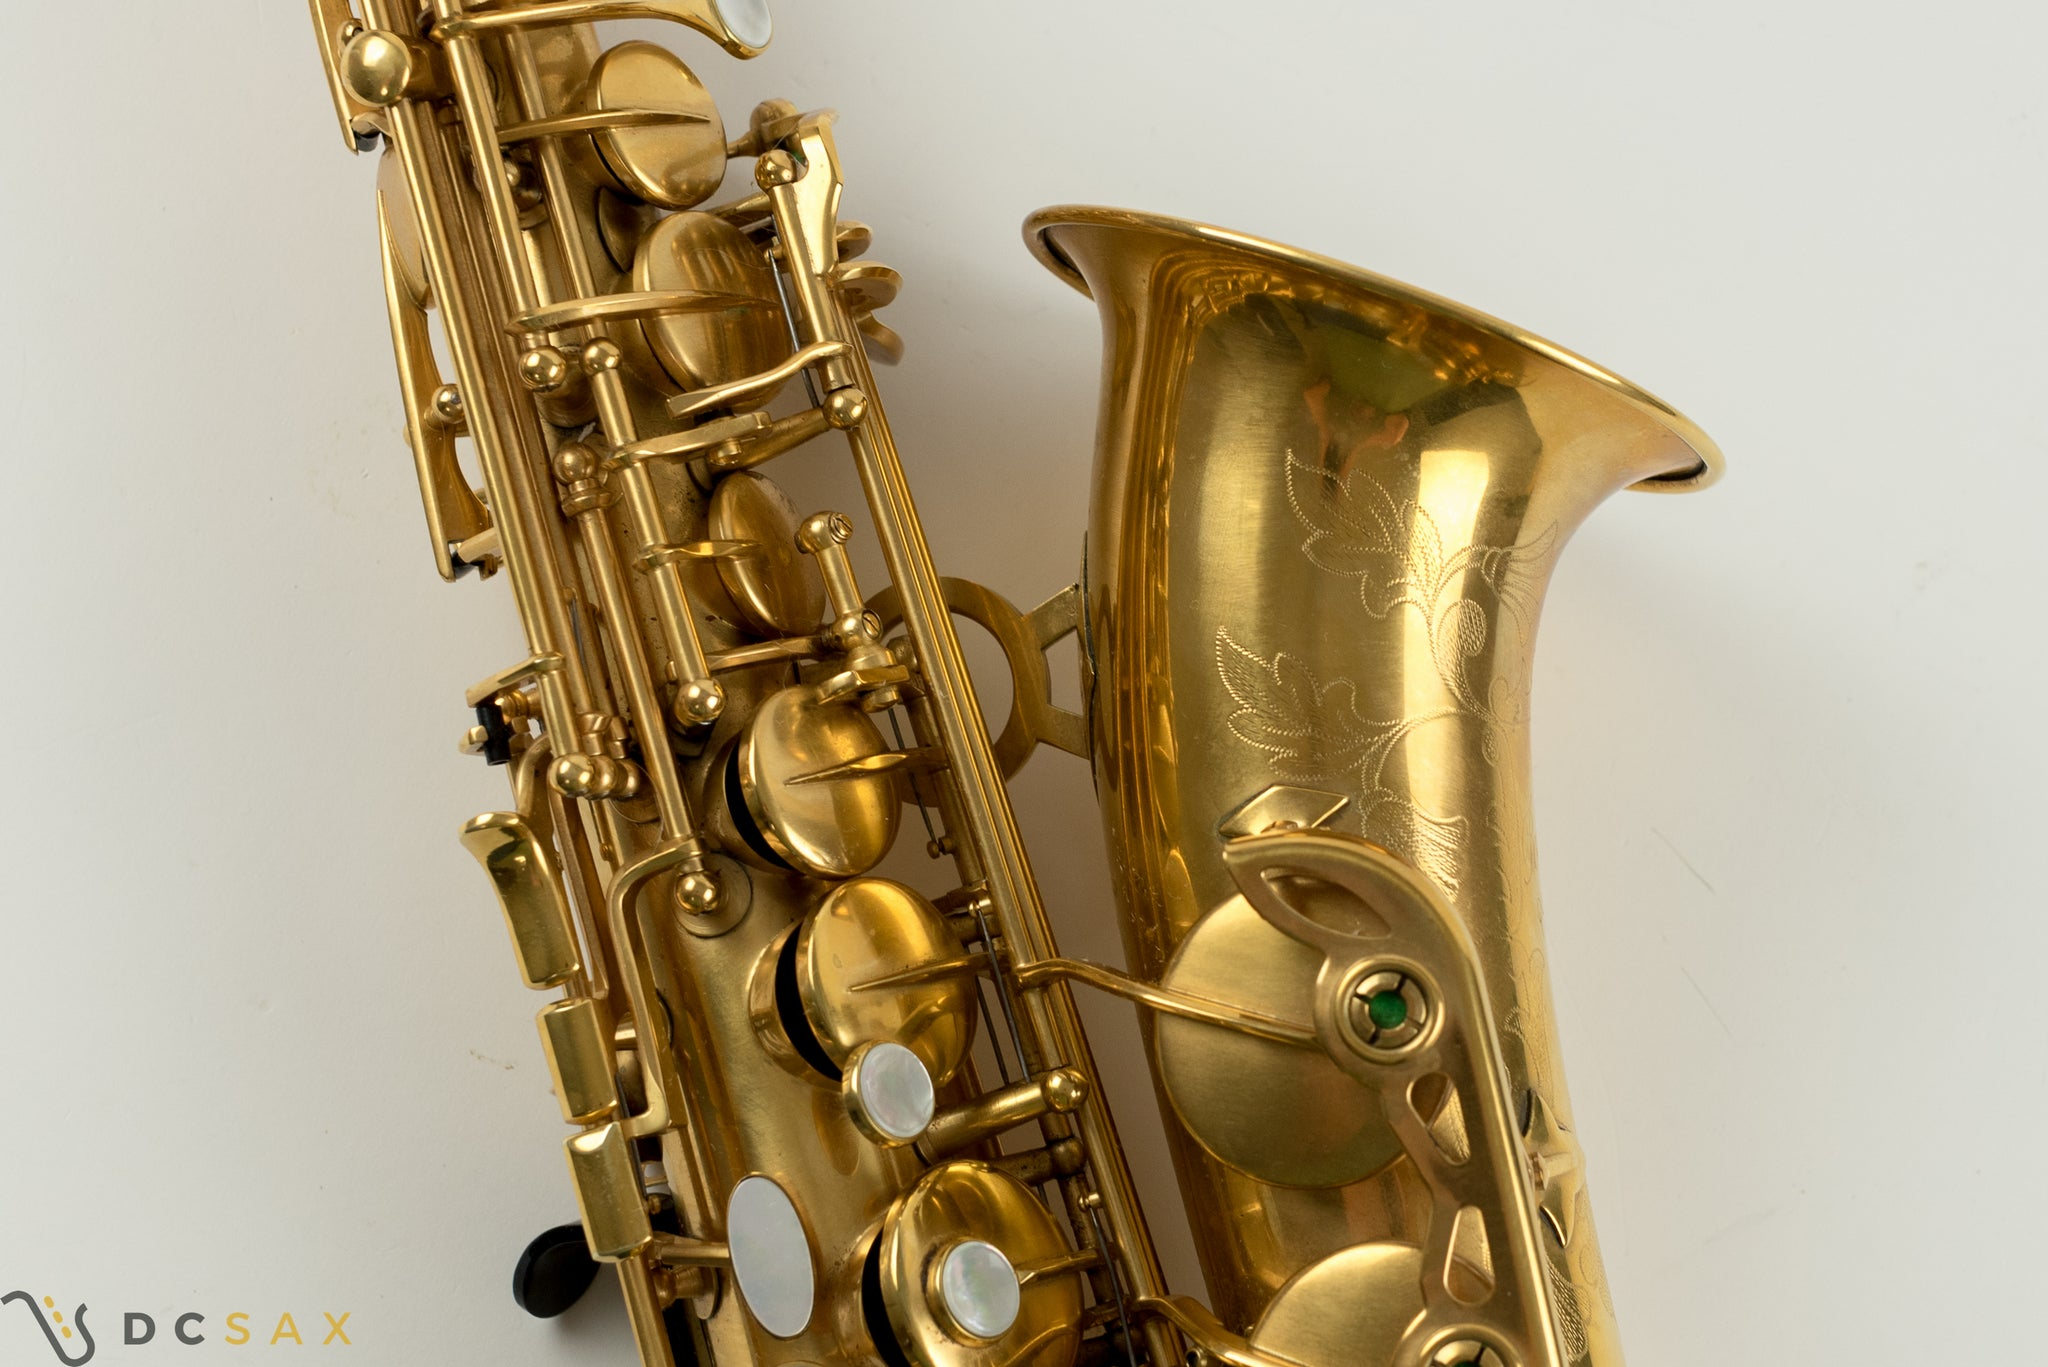 Rampone and Cazzani R1 Jazz Alto Saxophone, Gold Plated, Video Demo